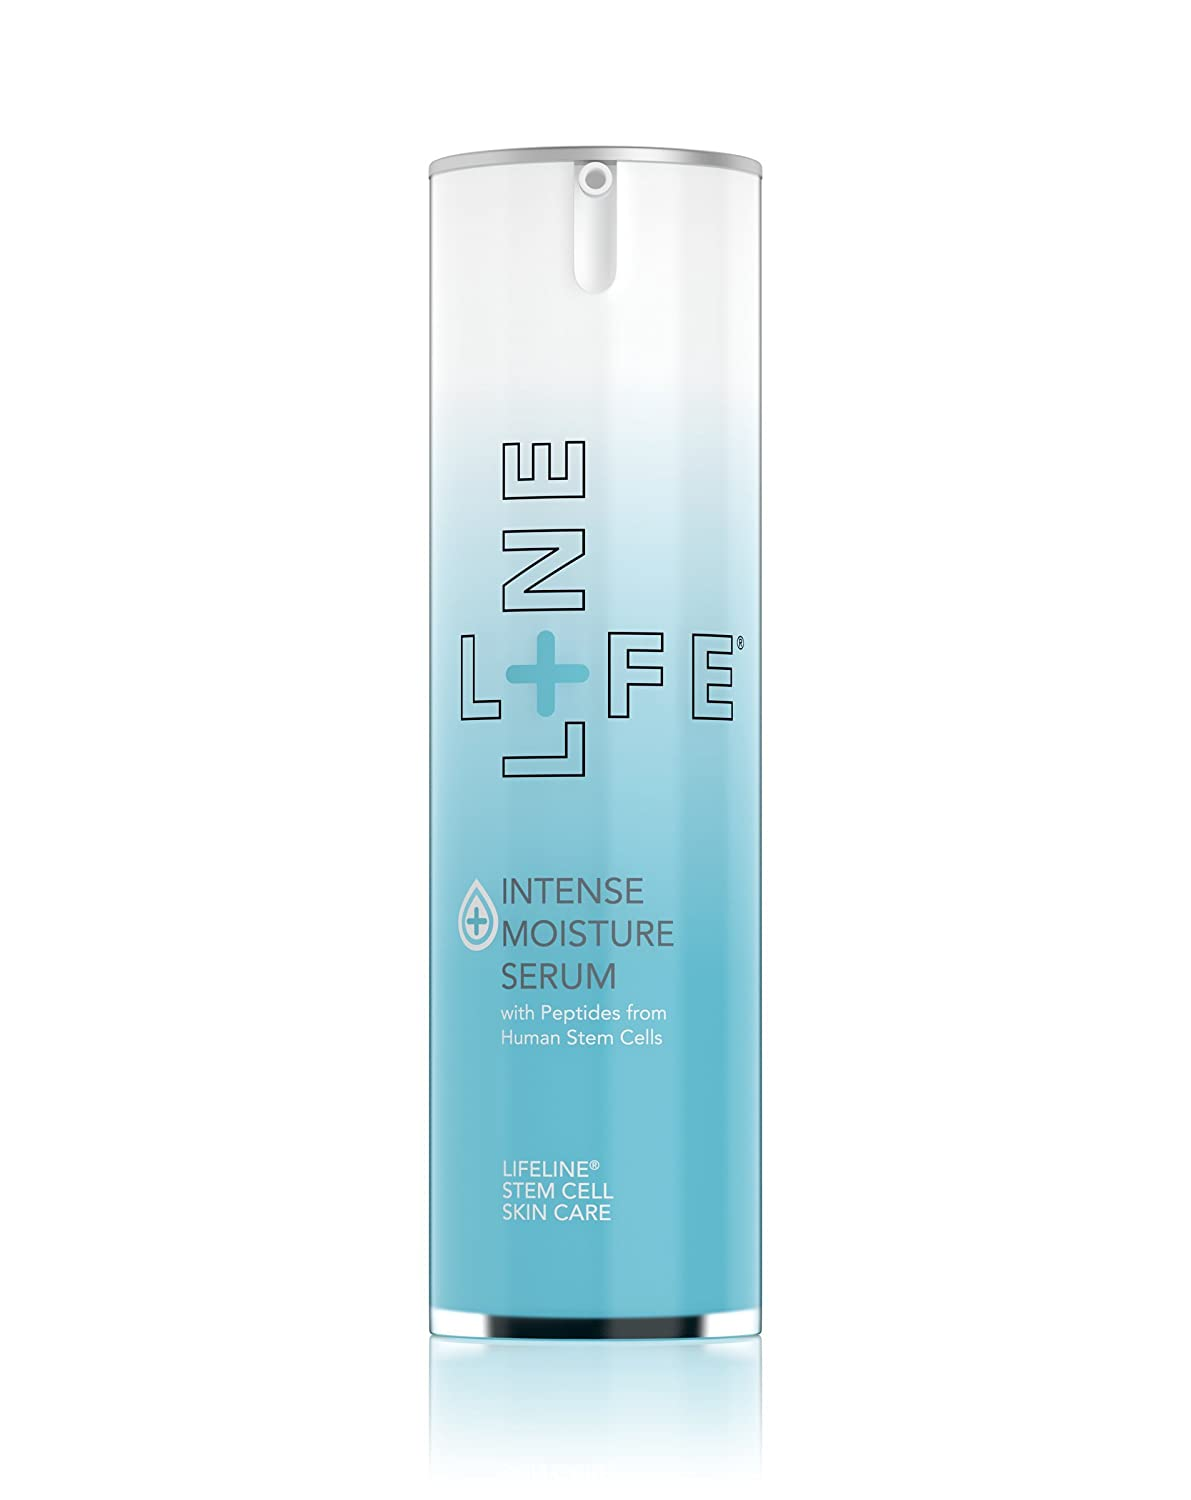 Lifeline Intense Moisture Serum Fragrance Free Intense Continuous Hydration Reverses Signs of Aging, Proteins and Peptides to Replenish Skin